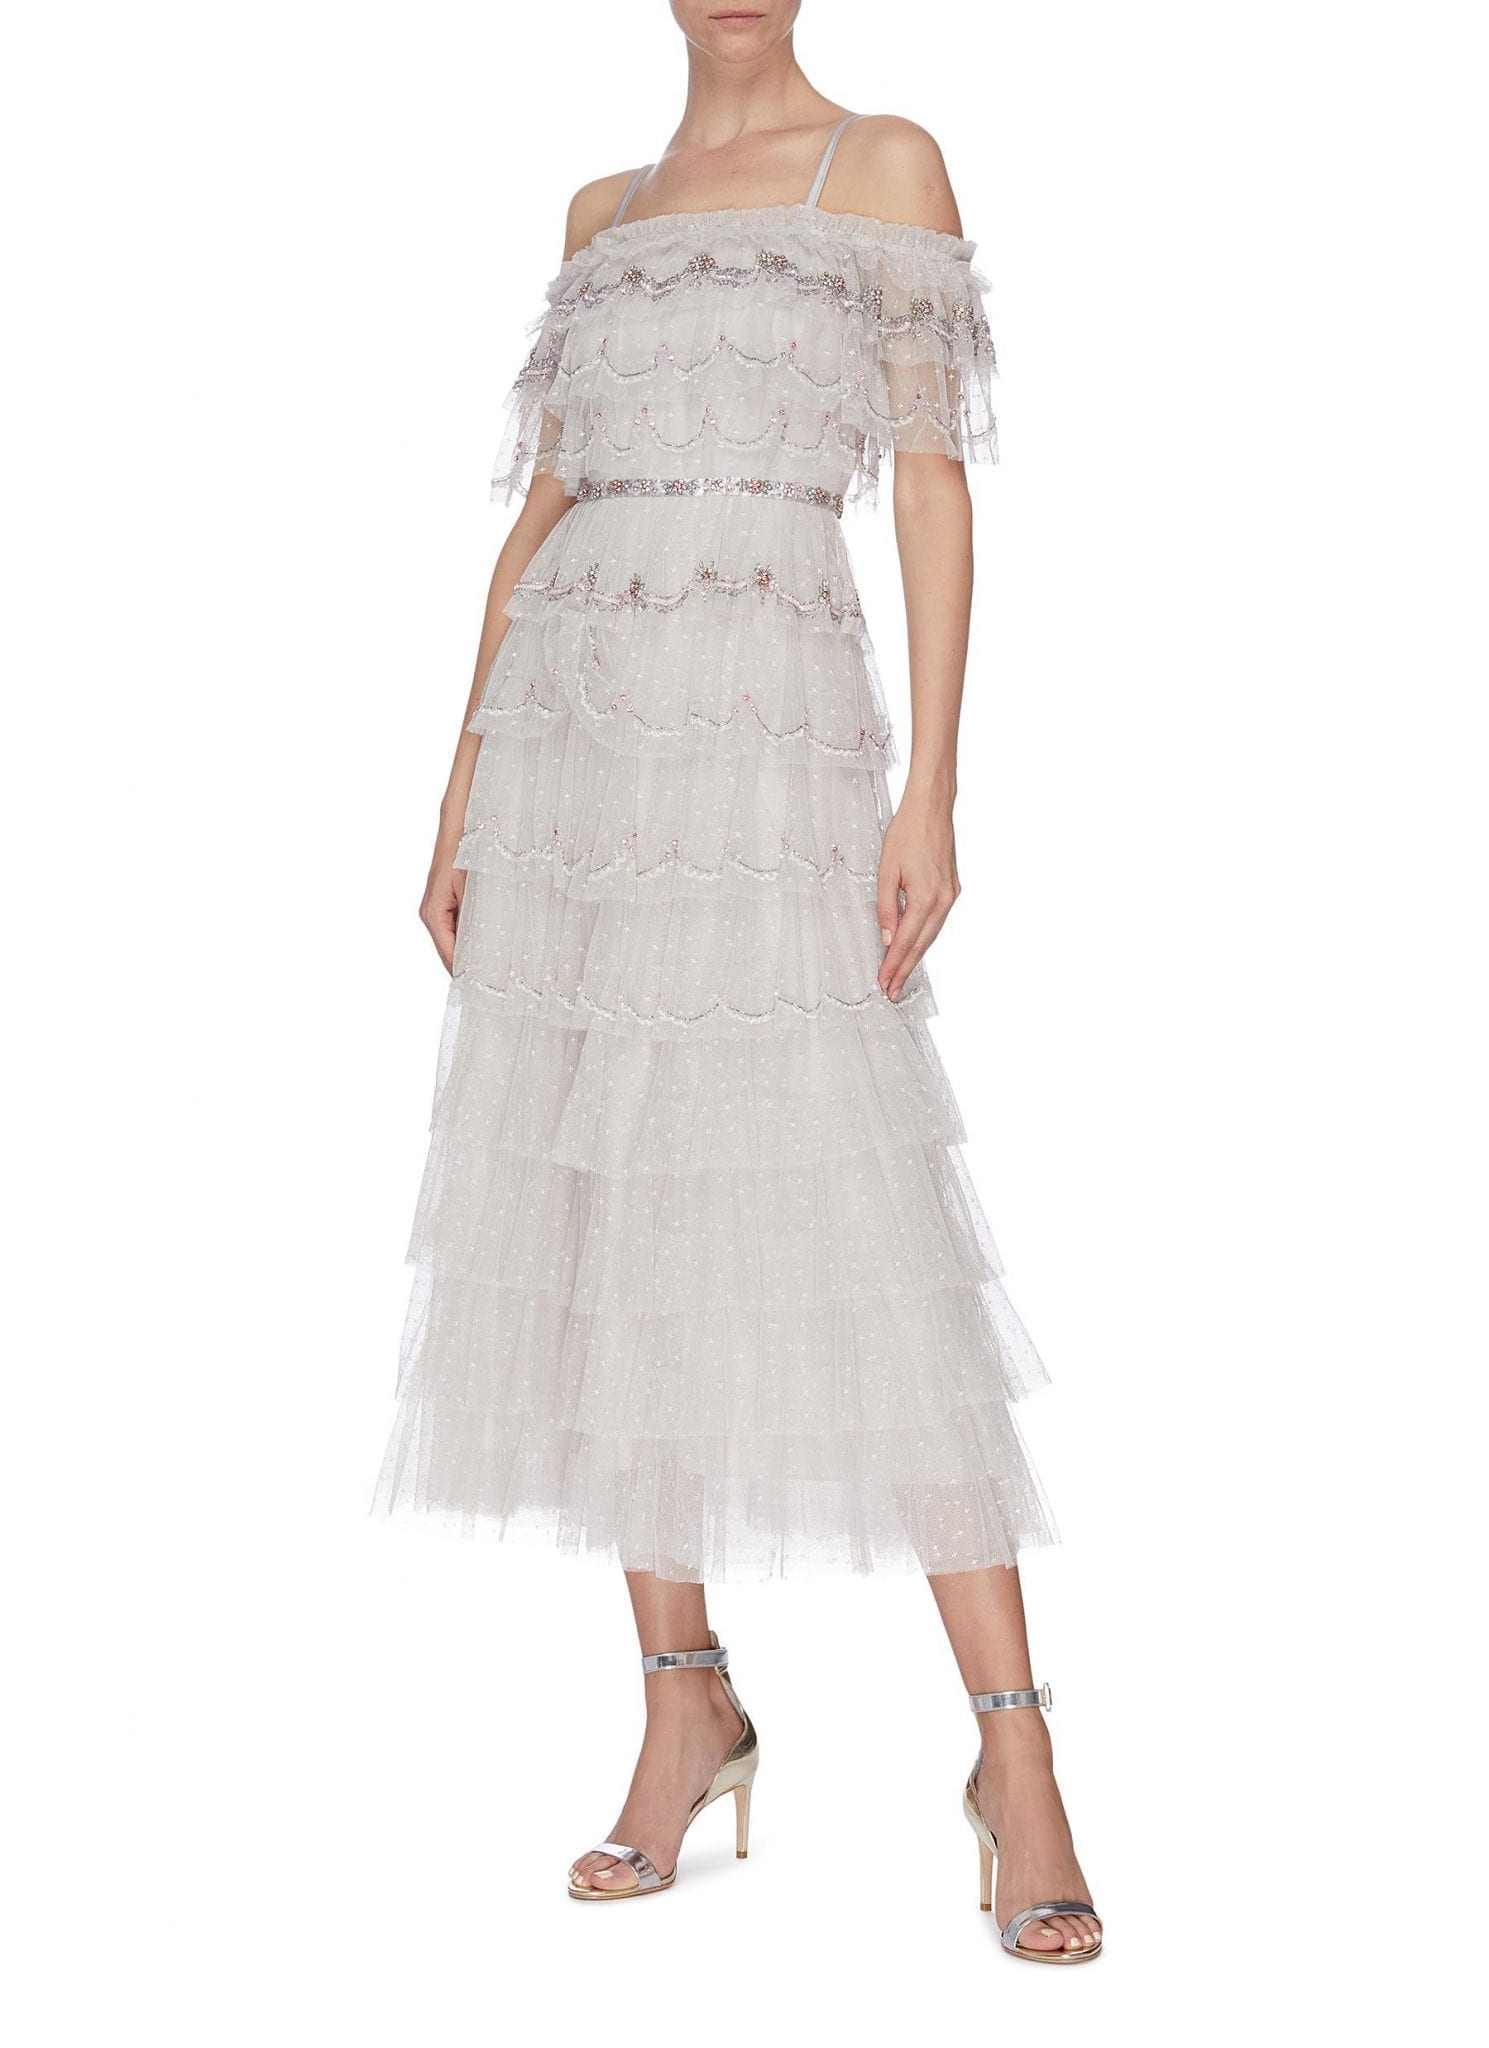 NEEDLE & THREAD Off Shoulder Ruffled Embroidered Ballerina Dress